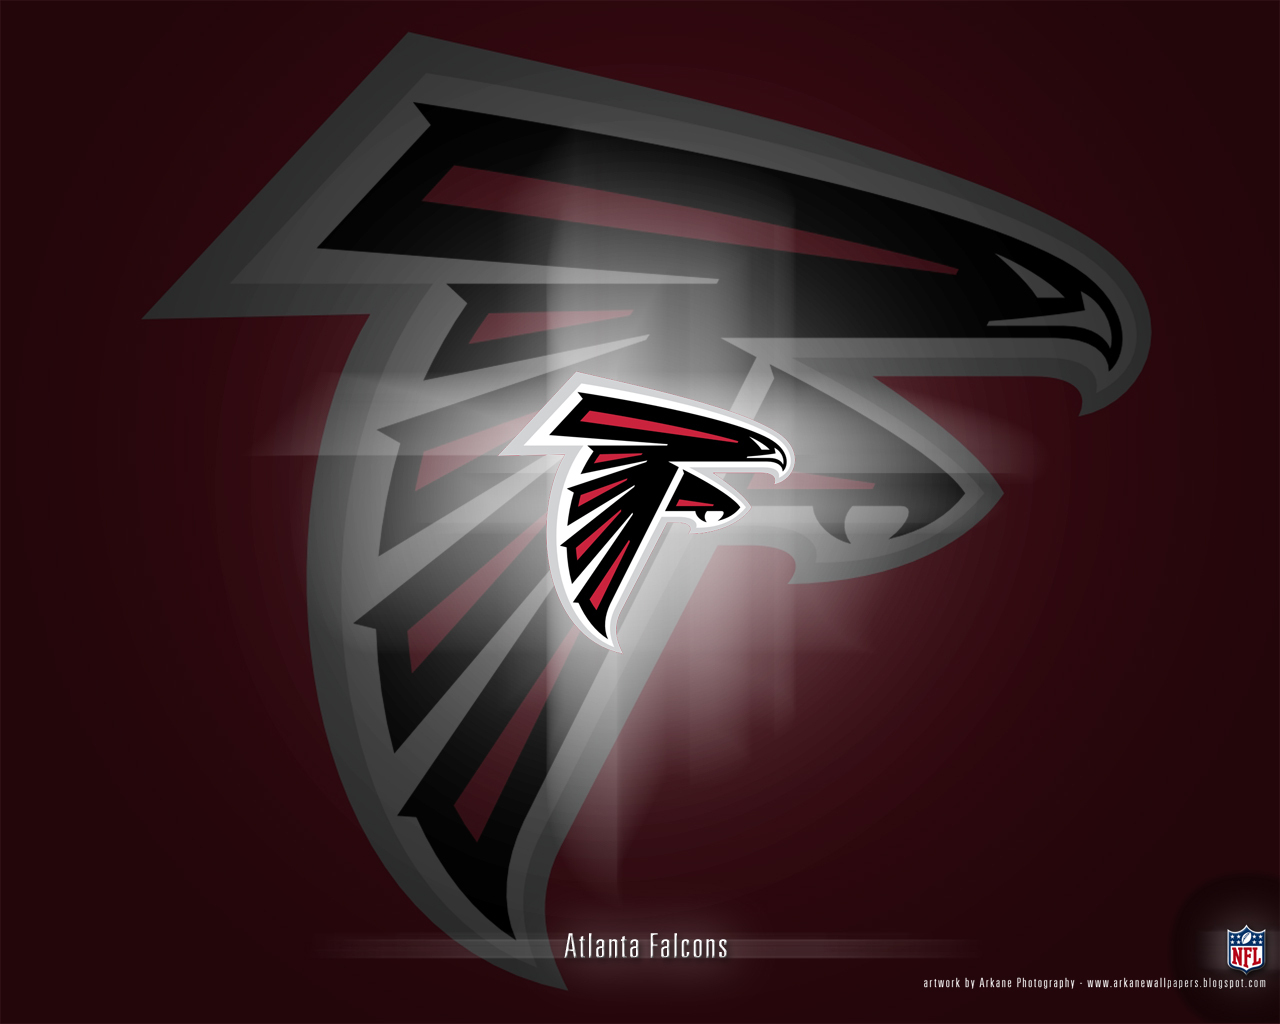 ATLANTA FALCONS - ATLANTA FALCONS Wallpaper (9173279) - Fanpop